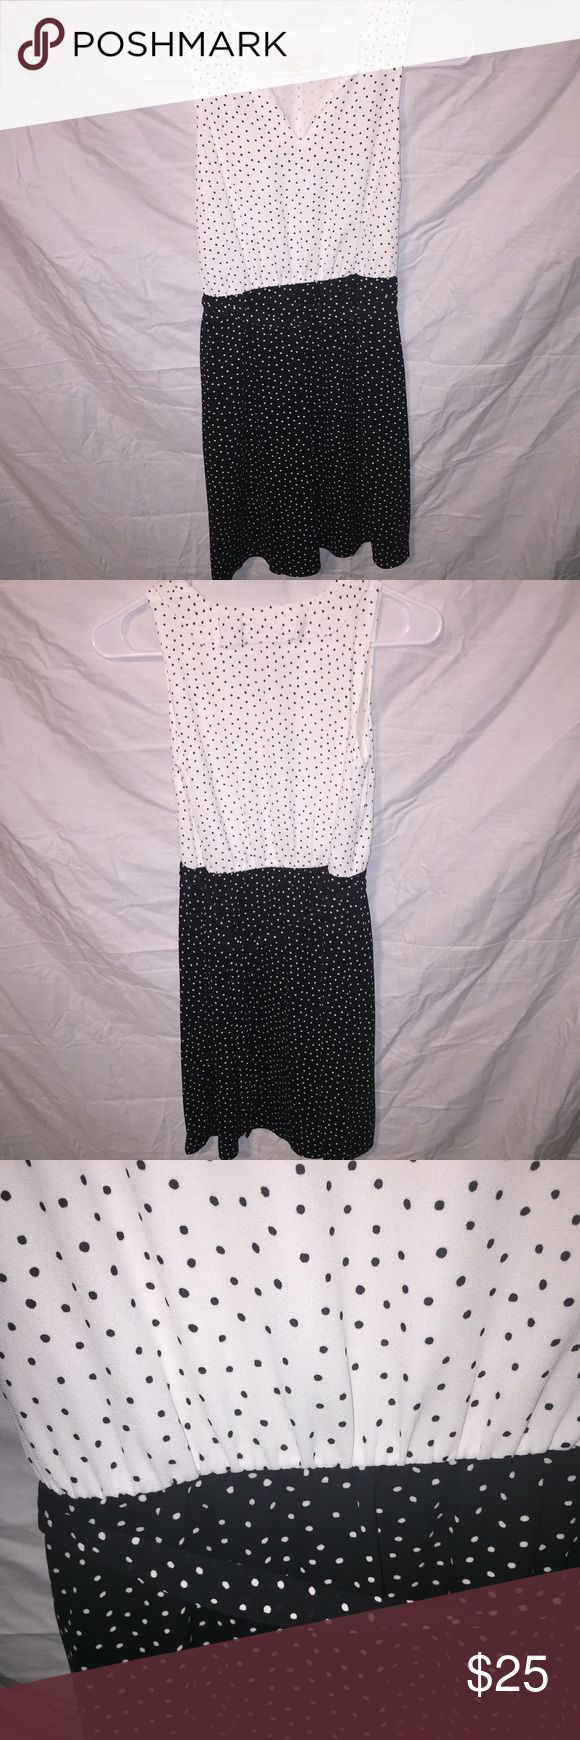 Ann Taylor Loft petite dot belted dress Contrastive black and white dress features coordinating self tie belt. Gorgeous dress is perfect for a day at the office. Ann Taylor Loft Dresses